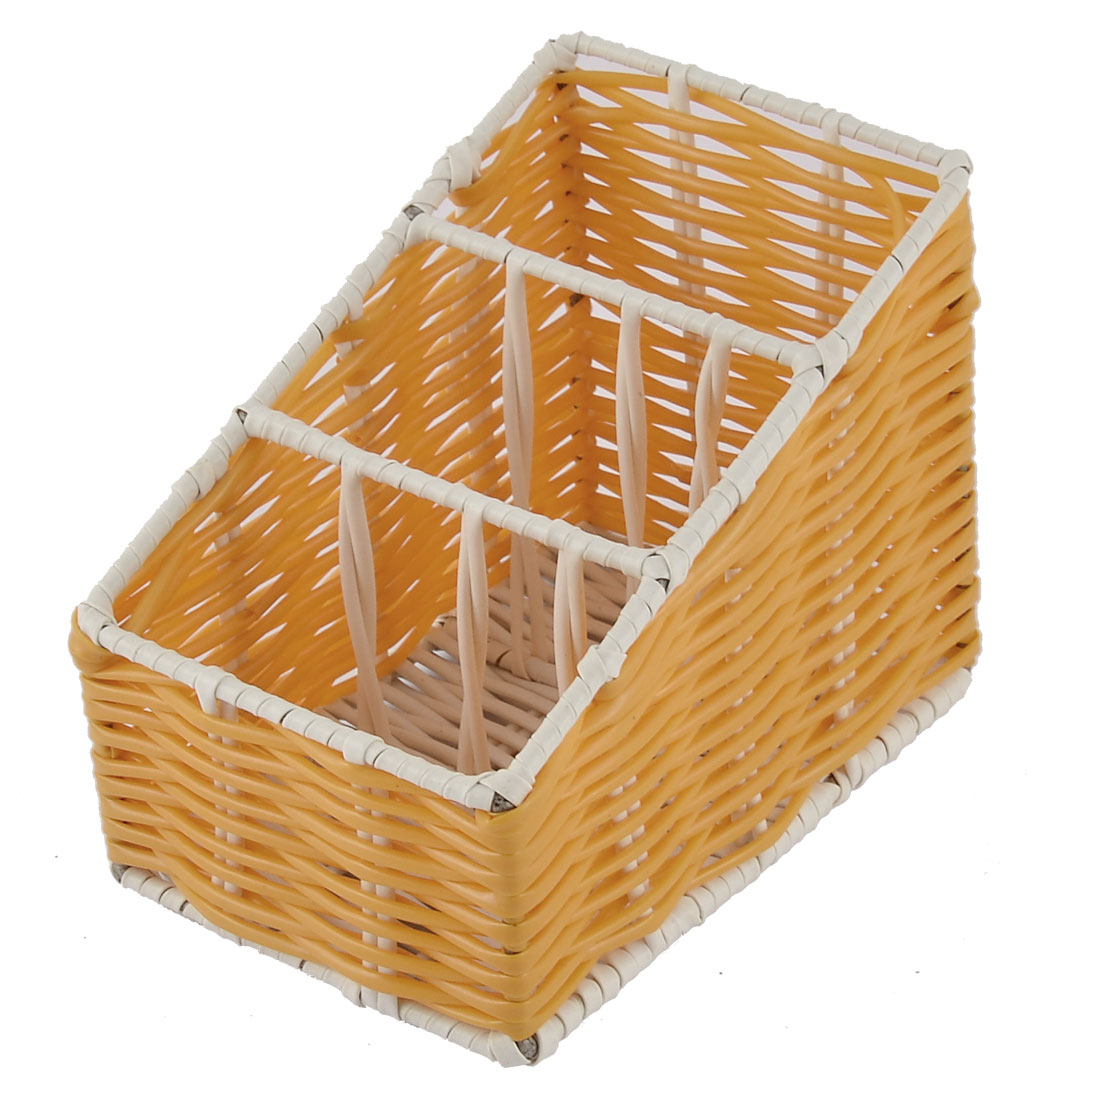 Kitchen Desk Household Plastic 3 Grids Woven Organizer Storage Box Case Basket Orange